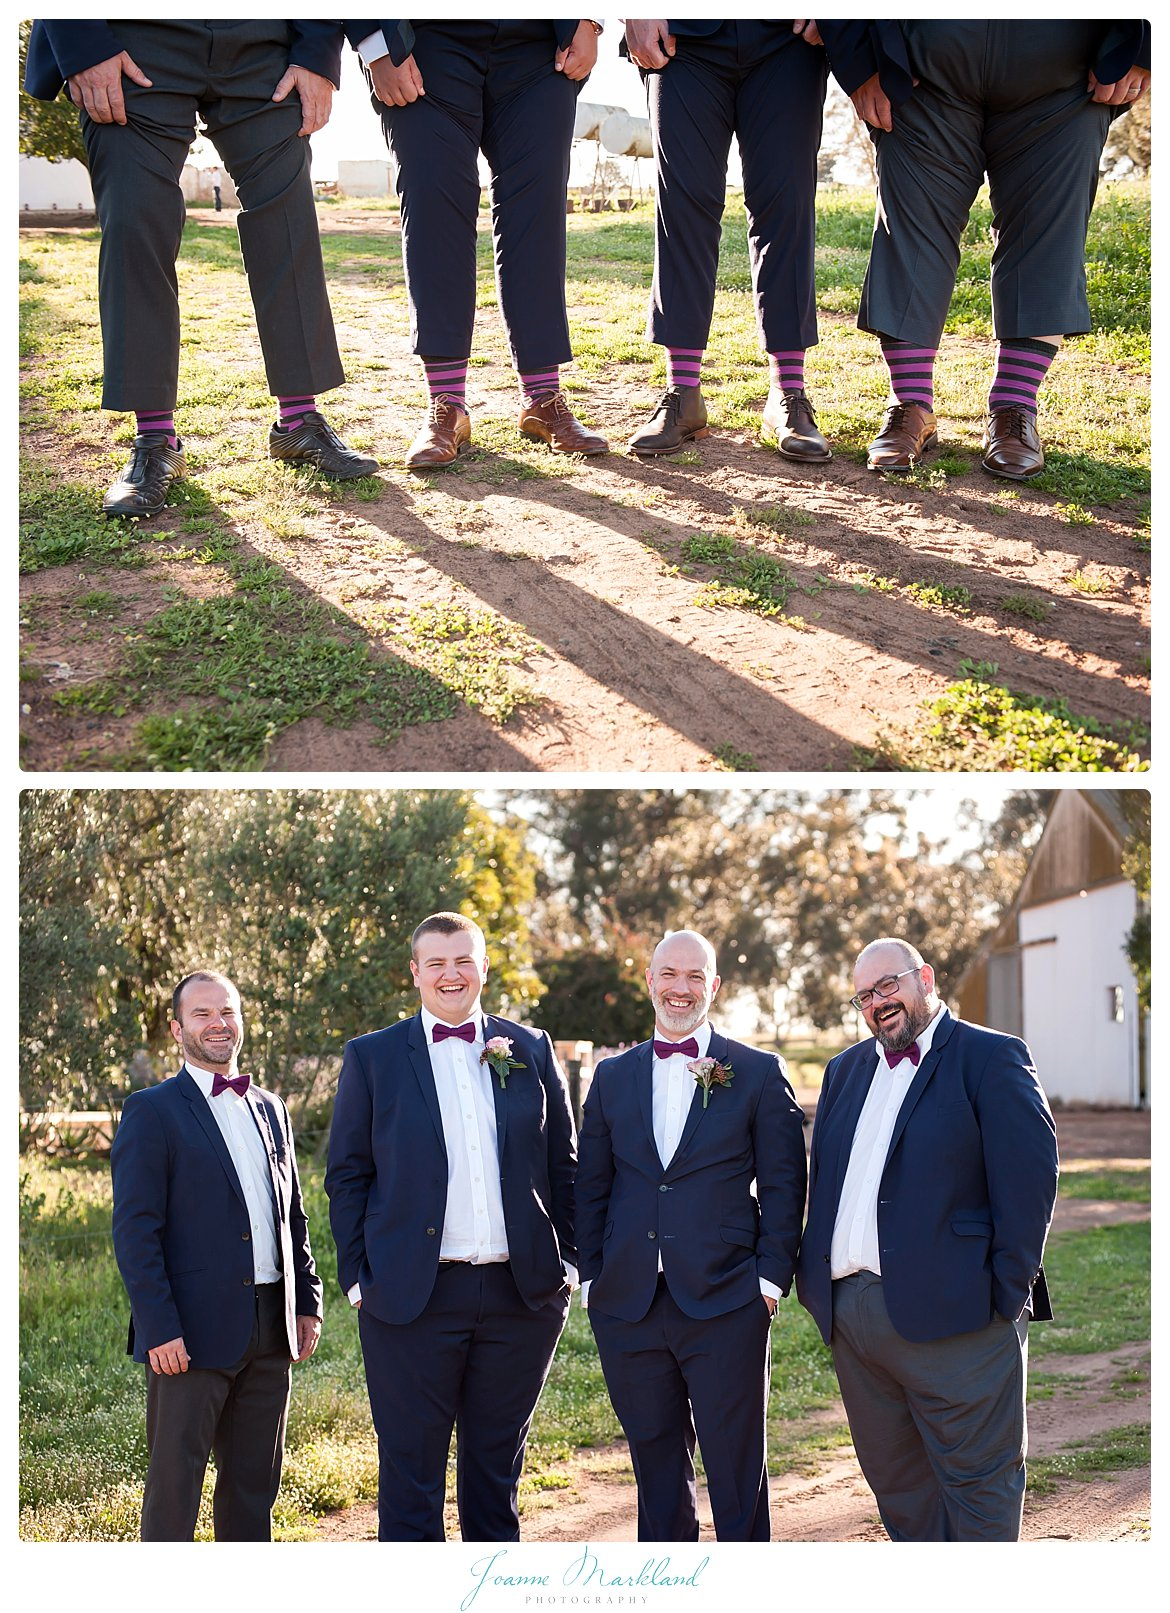 boorwater-wedding-hopefield-west-coast-cape-town-joanne-markland-photography-031